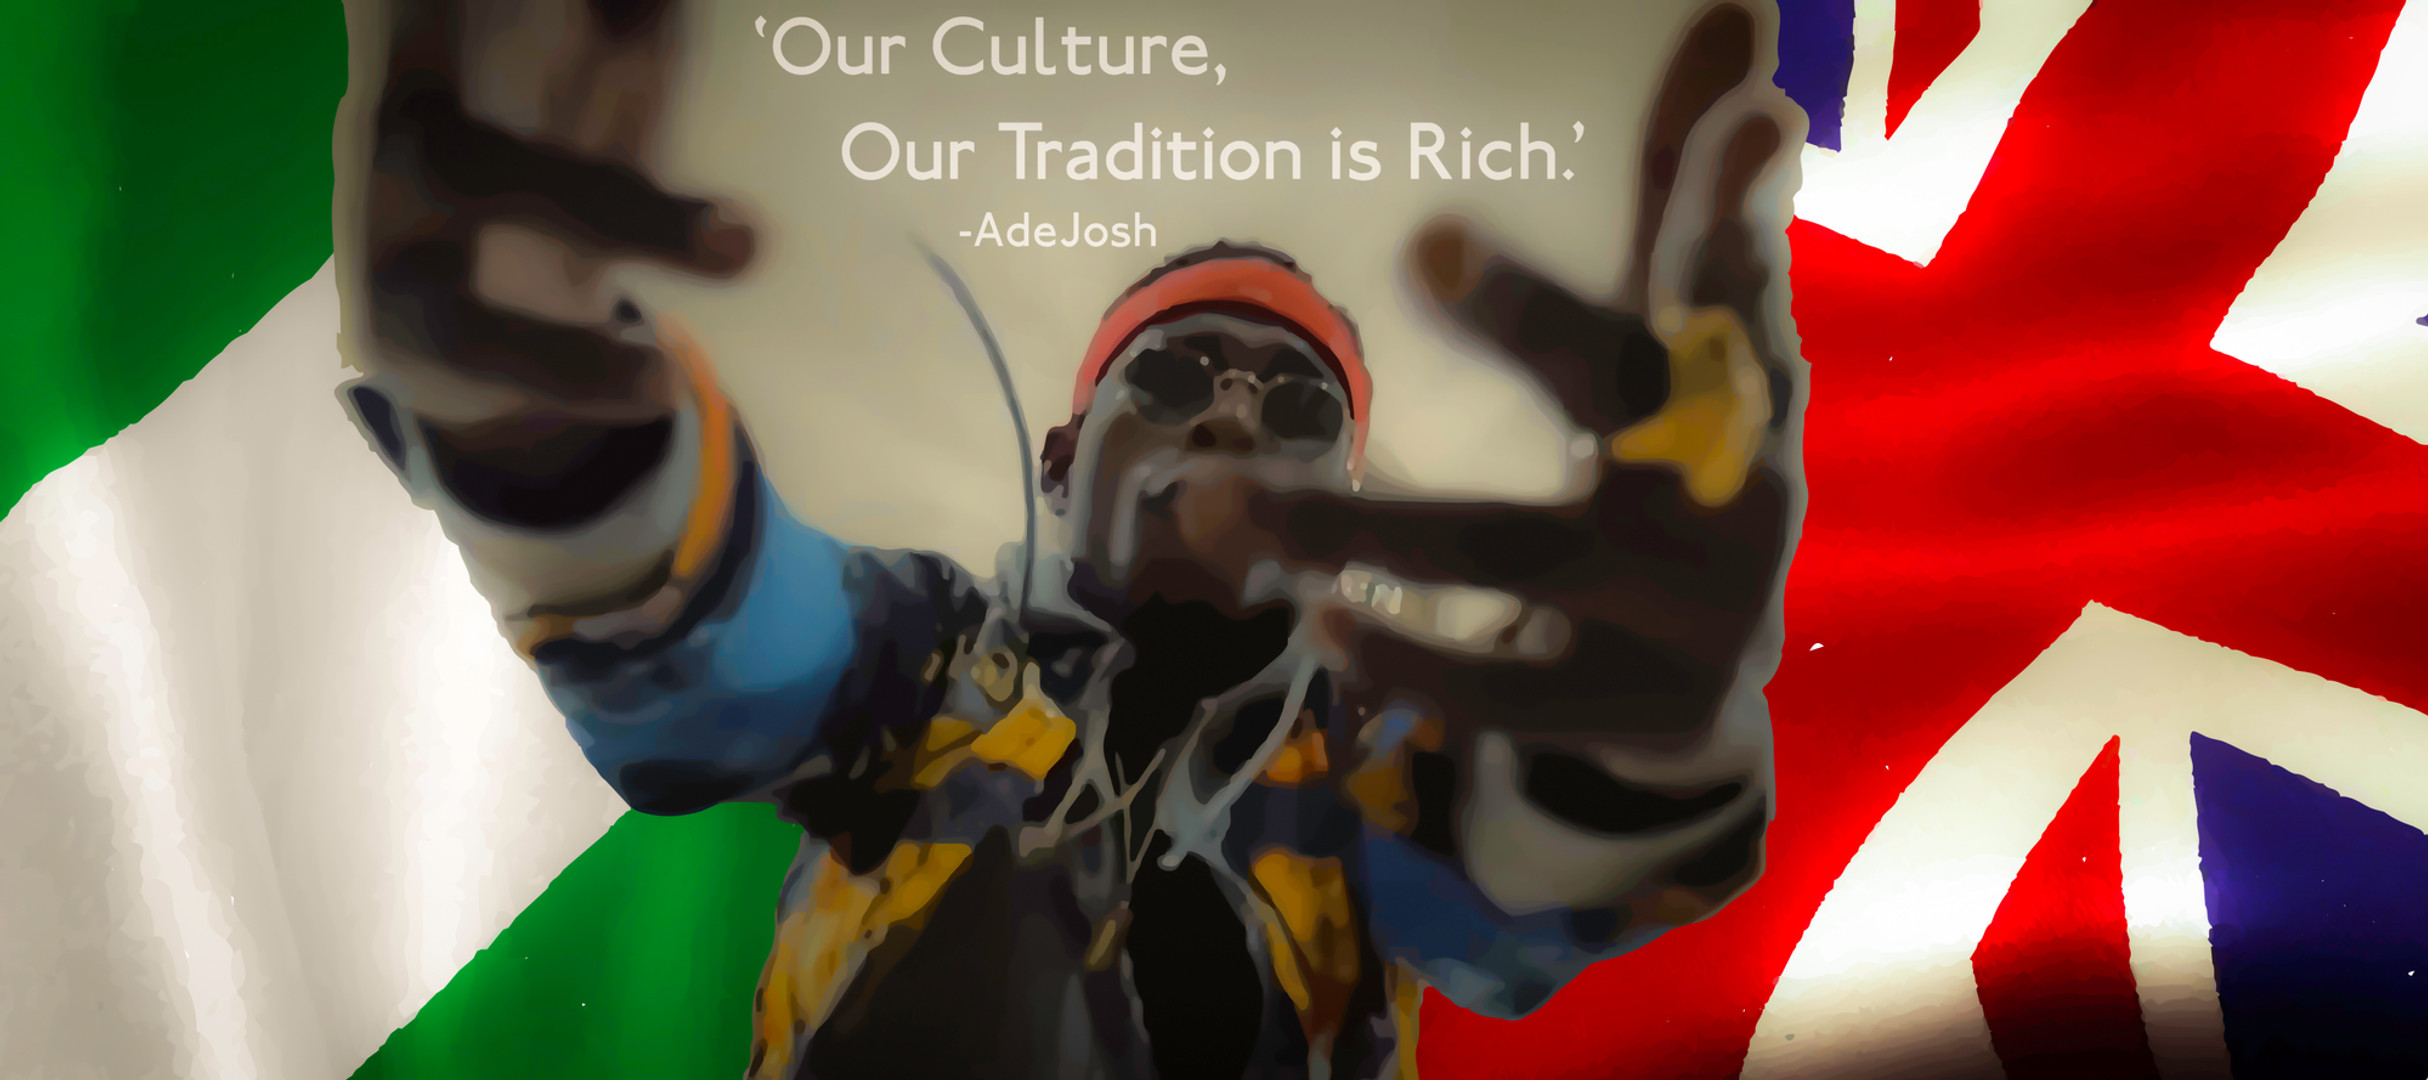 'Africa as a whole is full of riches and it always has been. I mean this as more than just gold, diamonds and oil. Our culture, our Tradition is rich.'